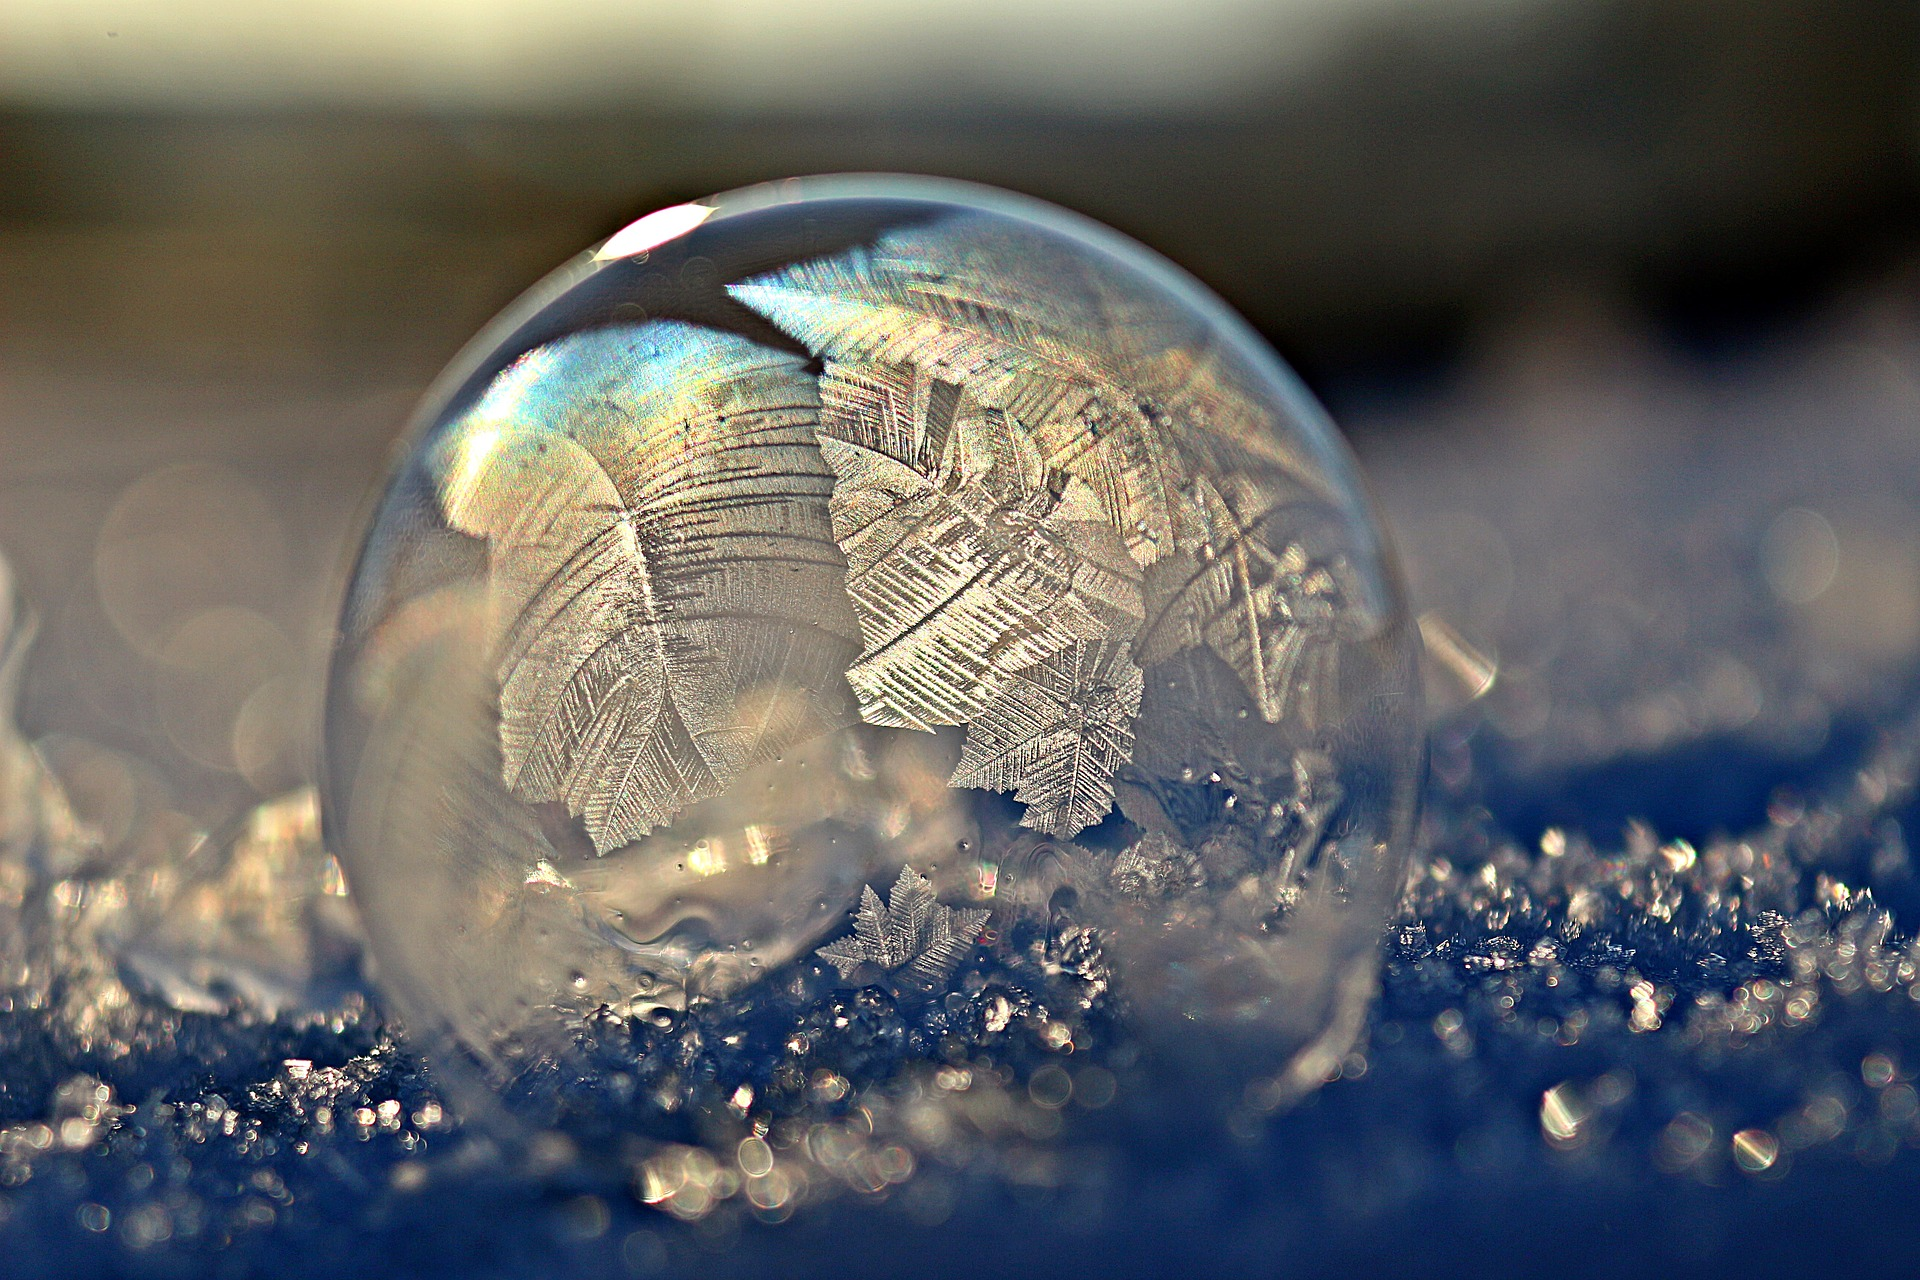 frozen bubble Pixabay holding image https://pixabay.com/photo-1984265/